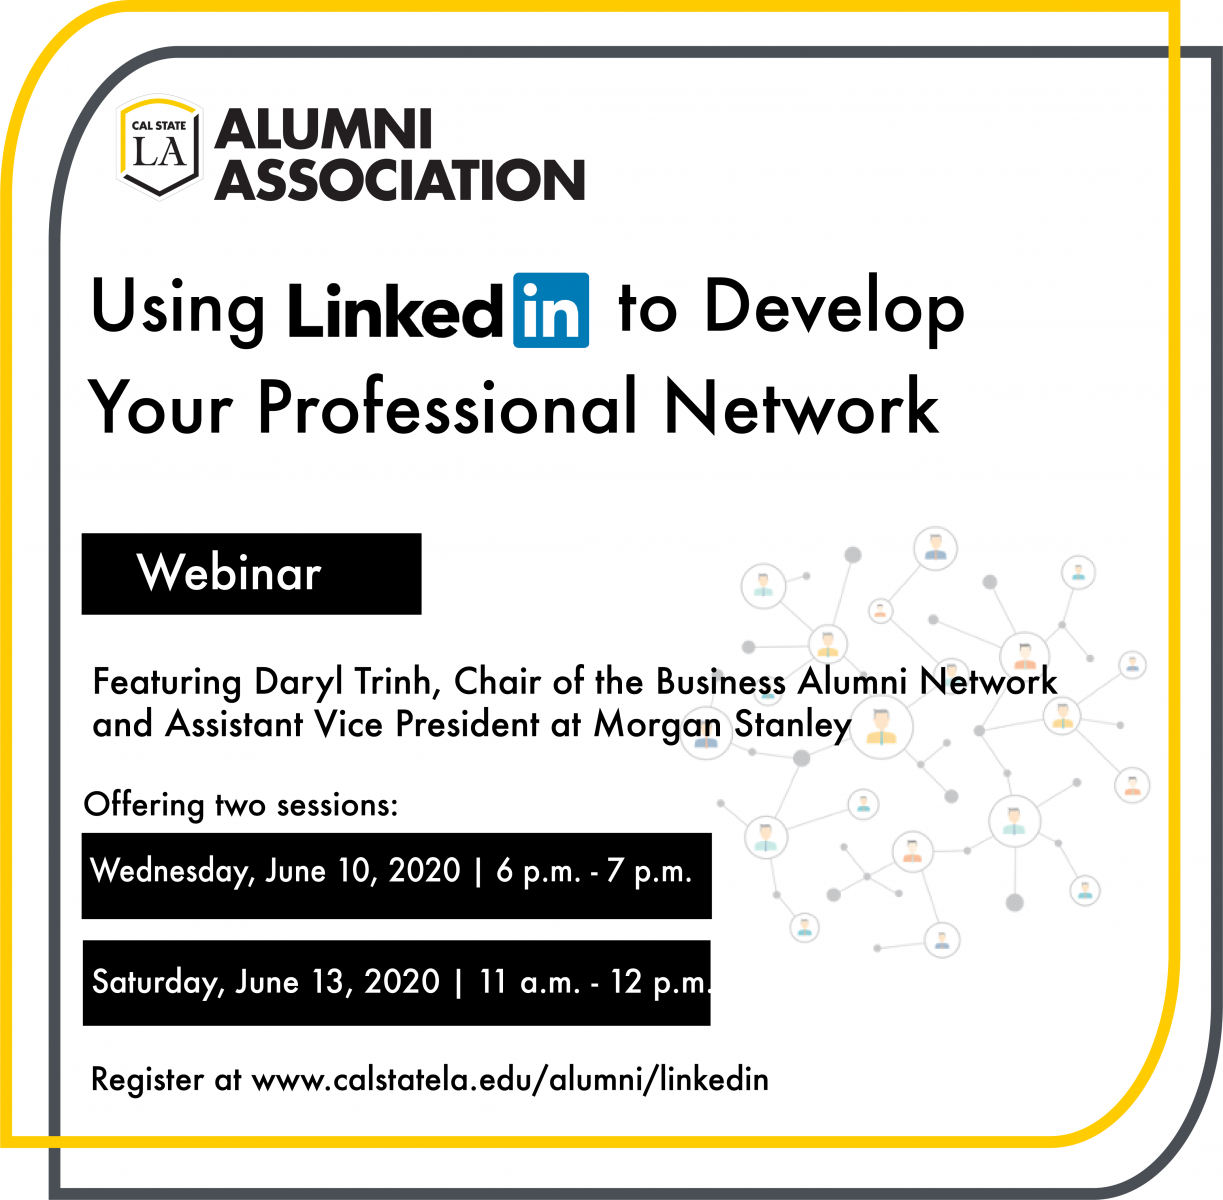 LinkedIn Webinar Alumni Association presents Using your LinkedIn to Develop your Professional Network